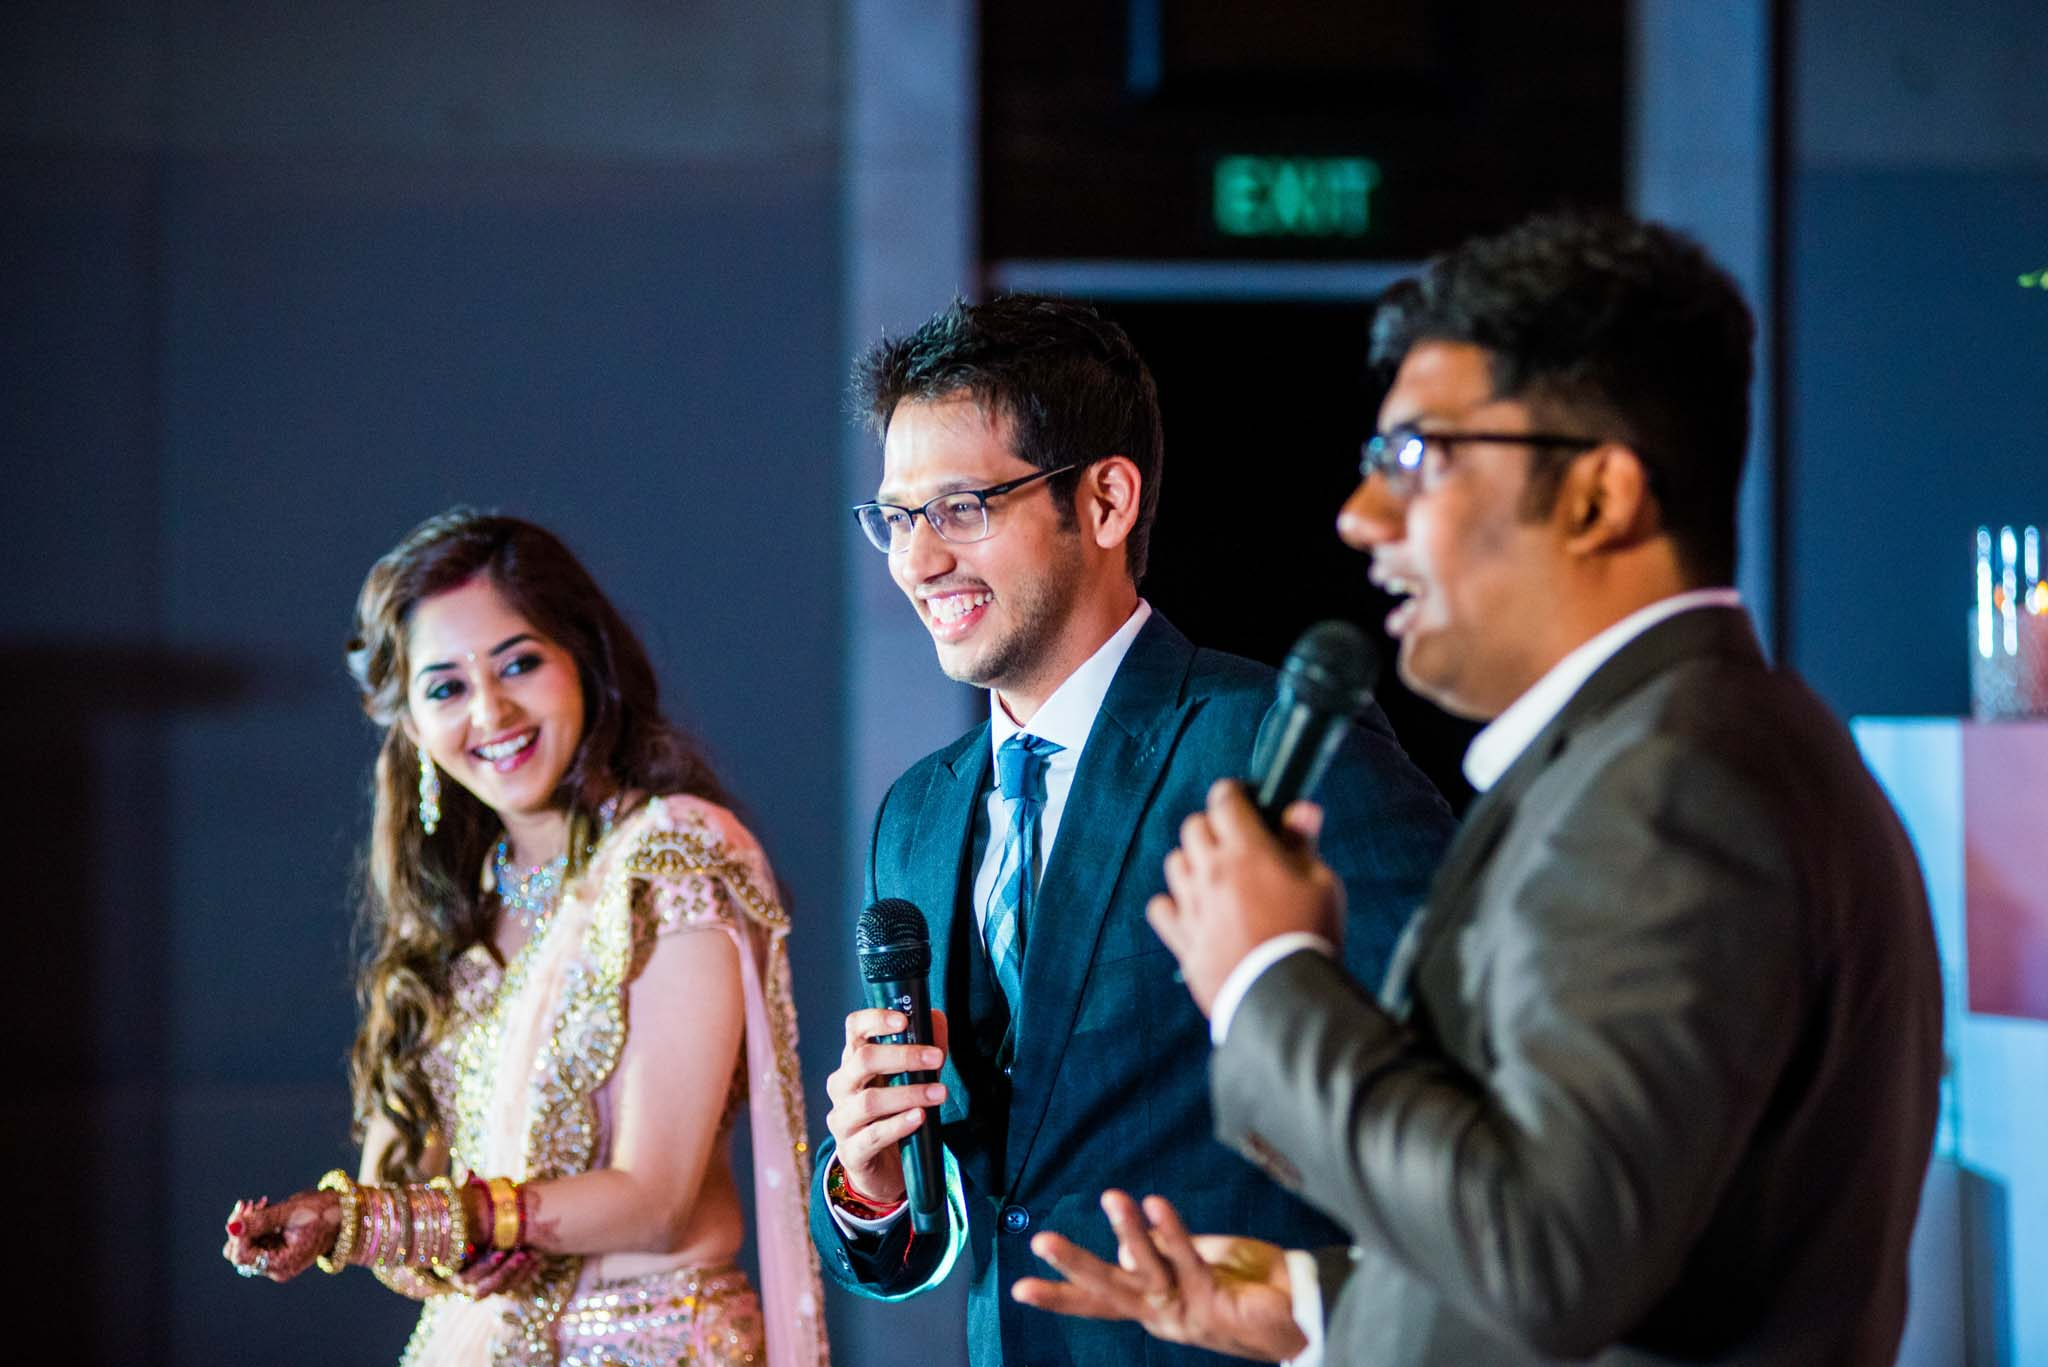 StRegis-Palladium-Mumbai-Candid-Wedding-Photography-60